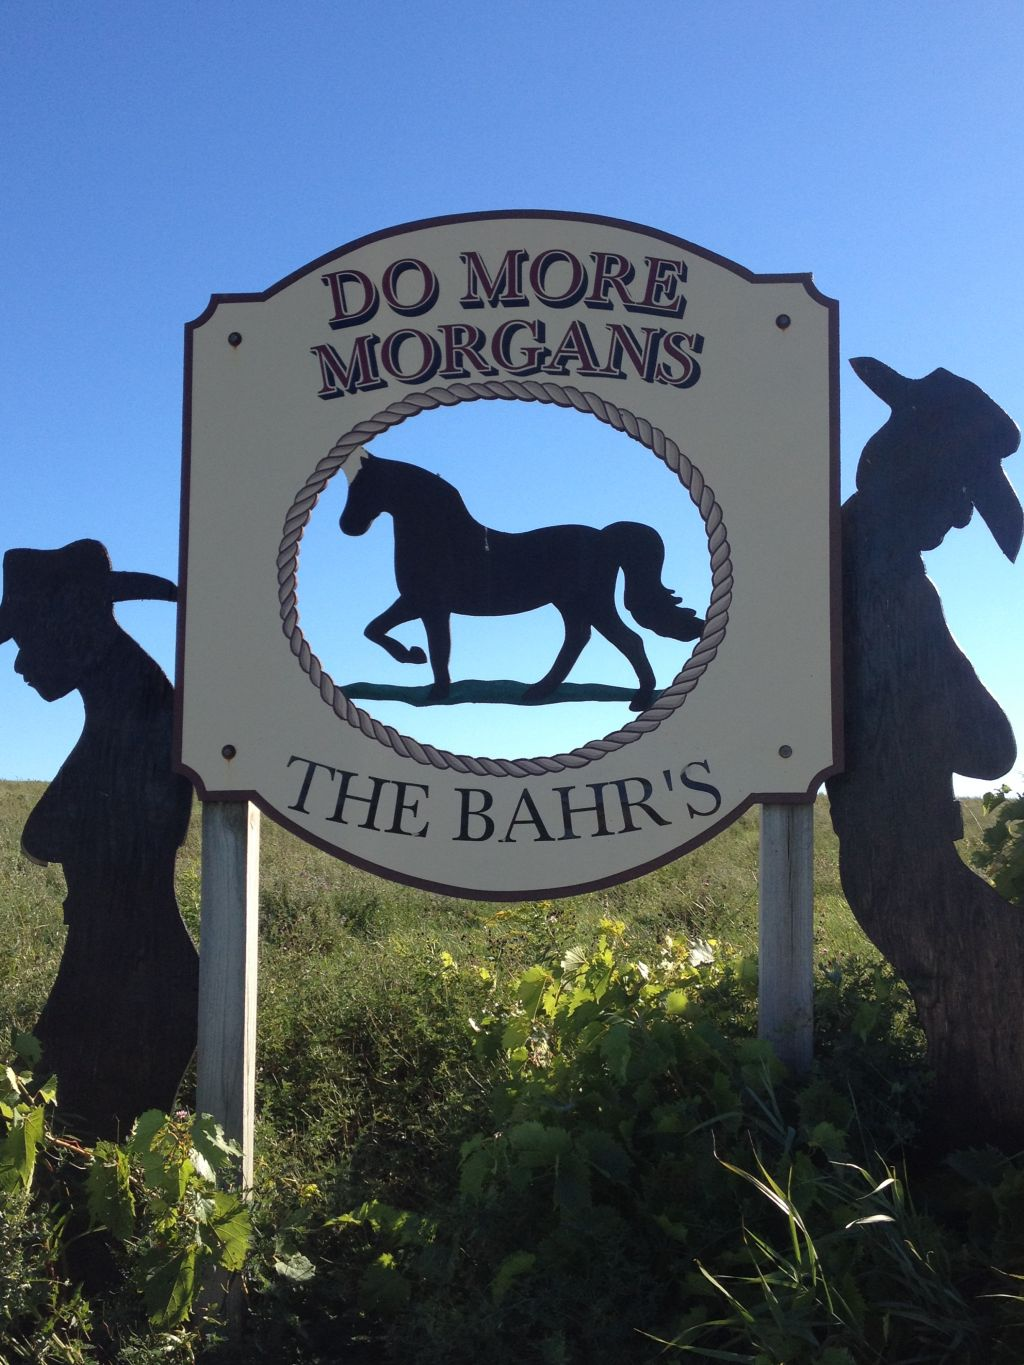 Do More Morgans